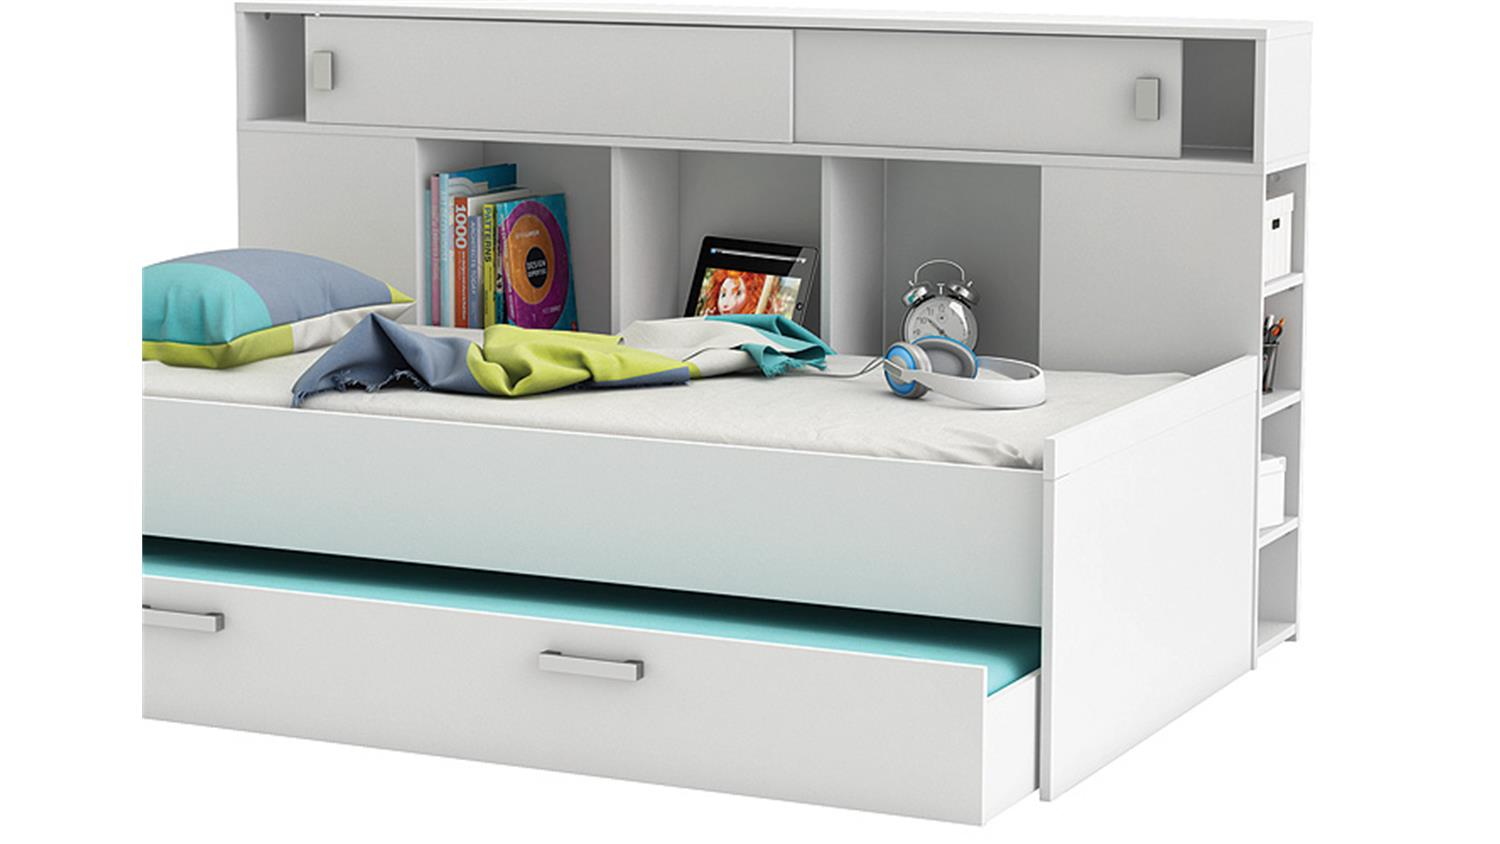 Bett Sherwood Kinderbett Perl Weiss Mit Bettkasten Regal